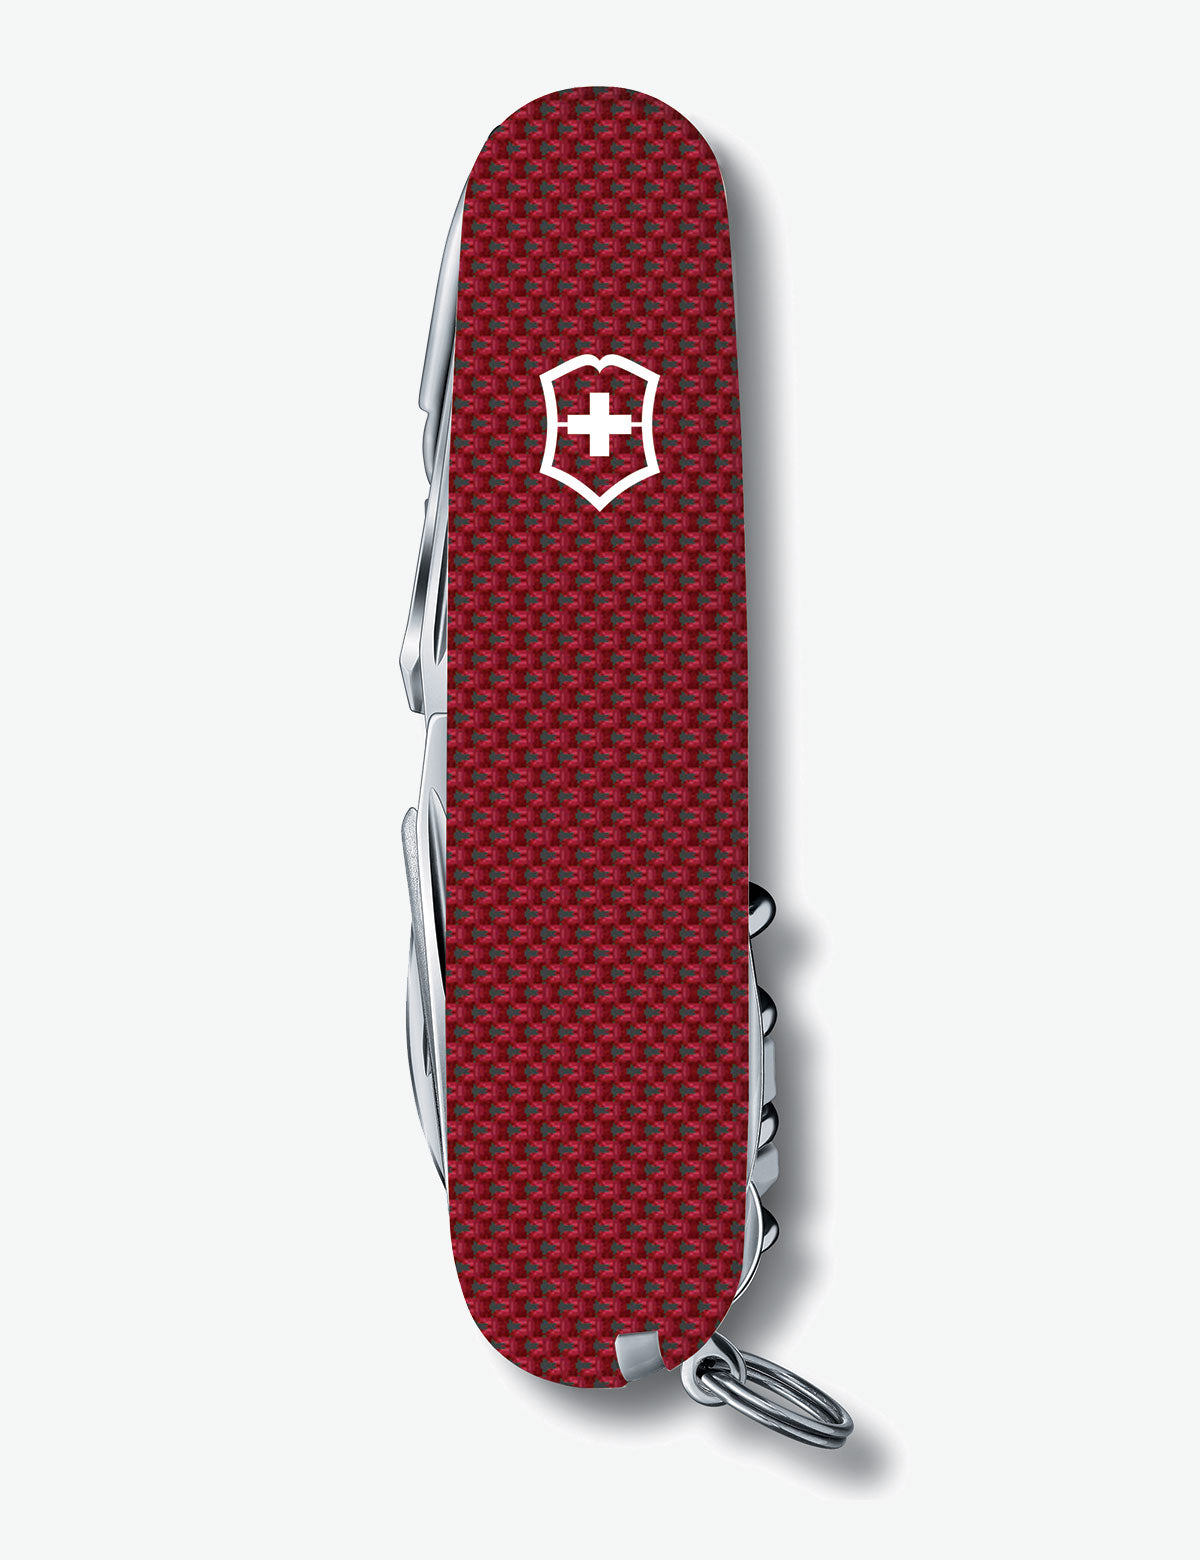 CLIMBER MASON 91MM SWISS ARMY POCKET KNIFE - U.S. Polo Assn.